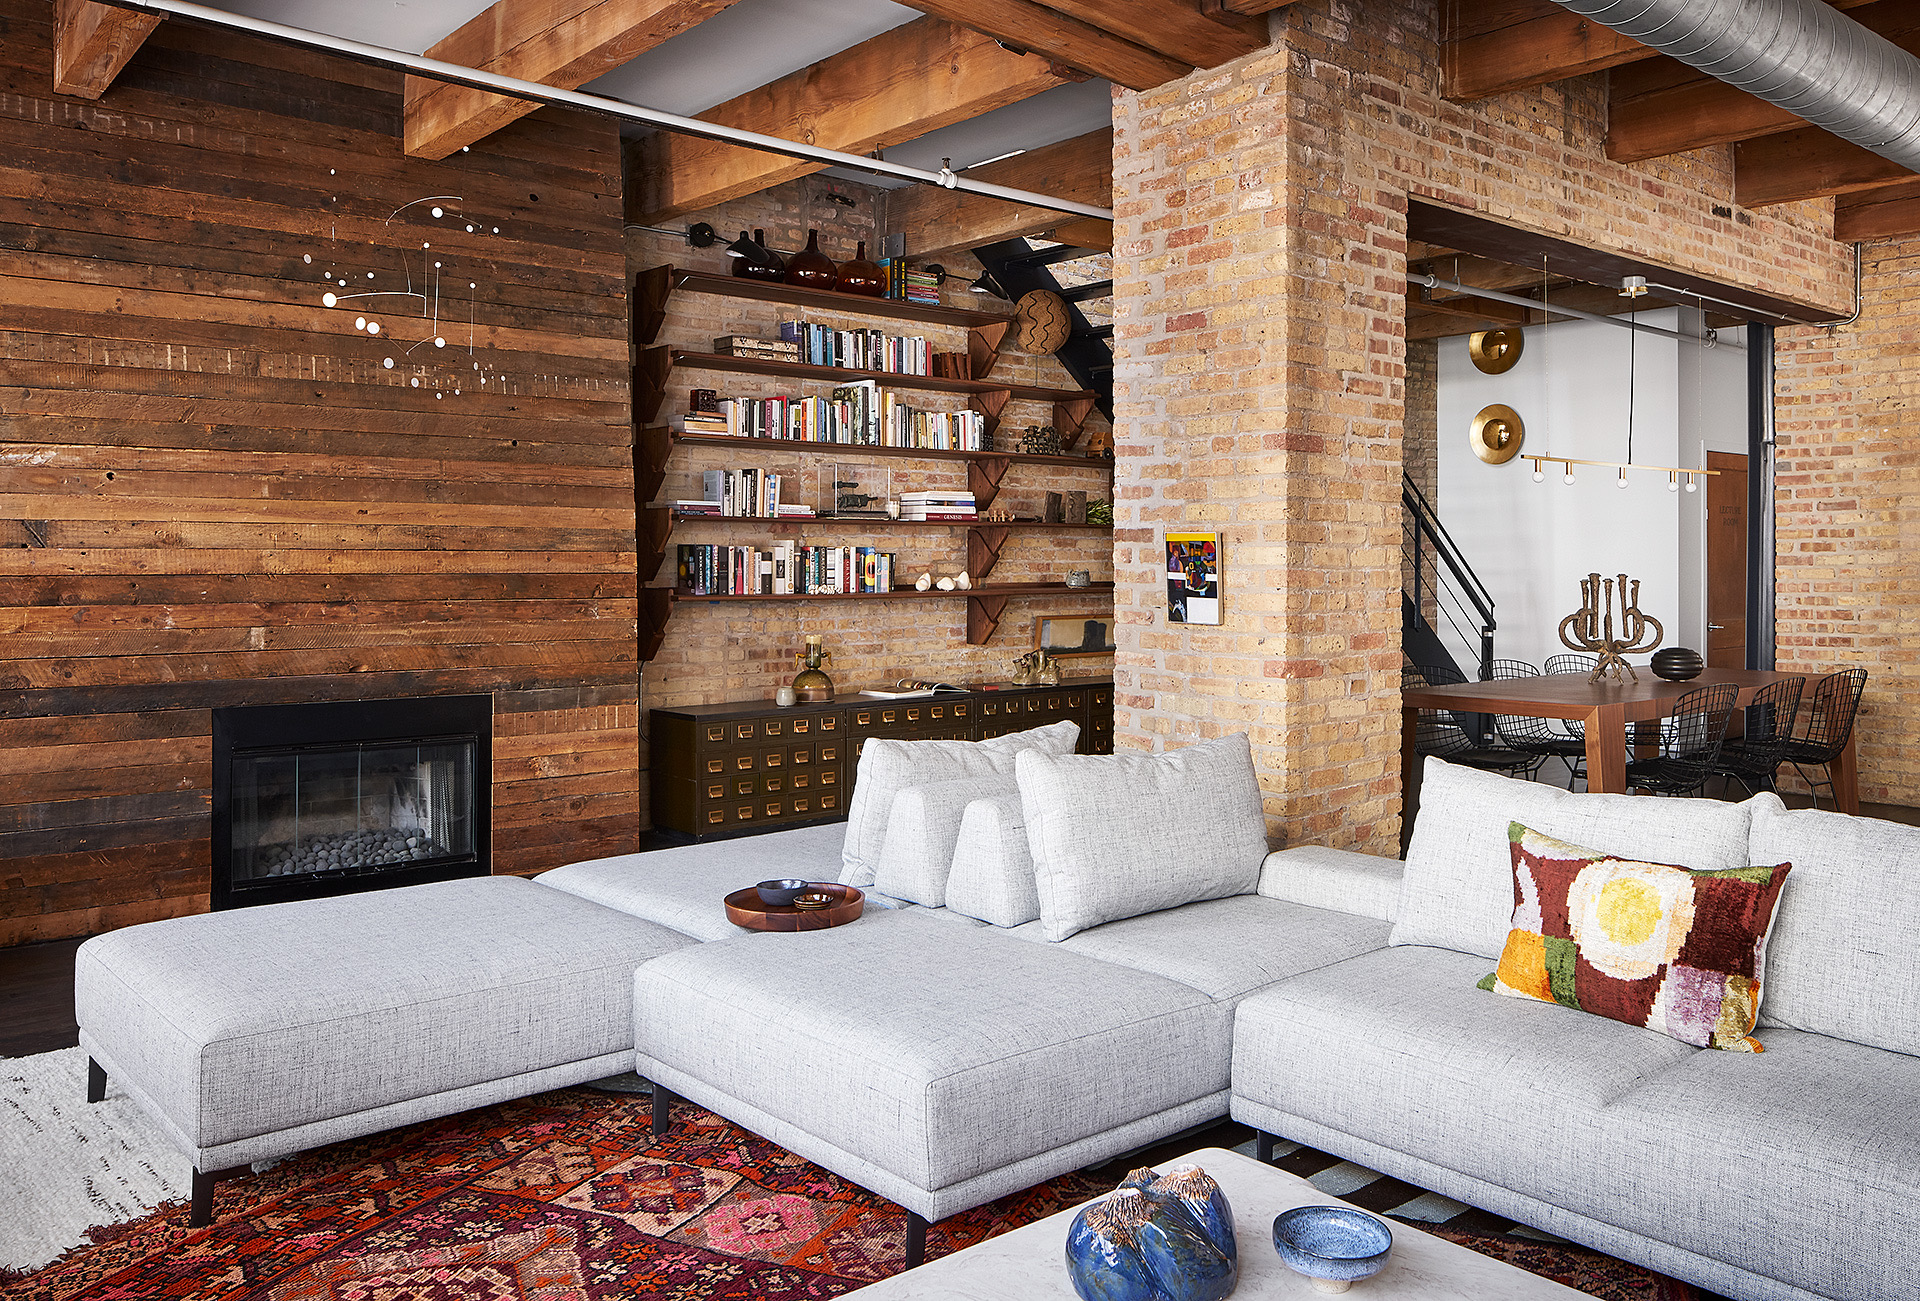 """Add Personal Details   To create an industrial-style space that feels warm and livable, create a setting that feels intimate and personal to the homeowner — """"either with curated vignettes or with heirloom and customized pieces that add an emotional connection to the environment,"""" says Melott.  Whether it's with curated artwork, a personal library, or framed family photographs, use items that reflect the homeowners to give the space a warm and comforting touch. """"Personal items that reflect the homeowner's preferences allow the space to stand out as being uniquely appointed,"""" says Andrea Michaelson of Andrea Michaelson Design. """"When using an industrial space that has industrial finishes as a background, you need to add more homey items to give it some soul and counterpoint."""""""